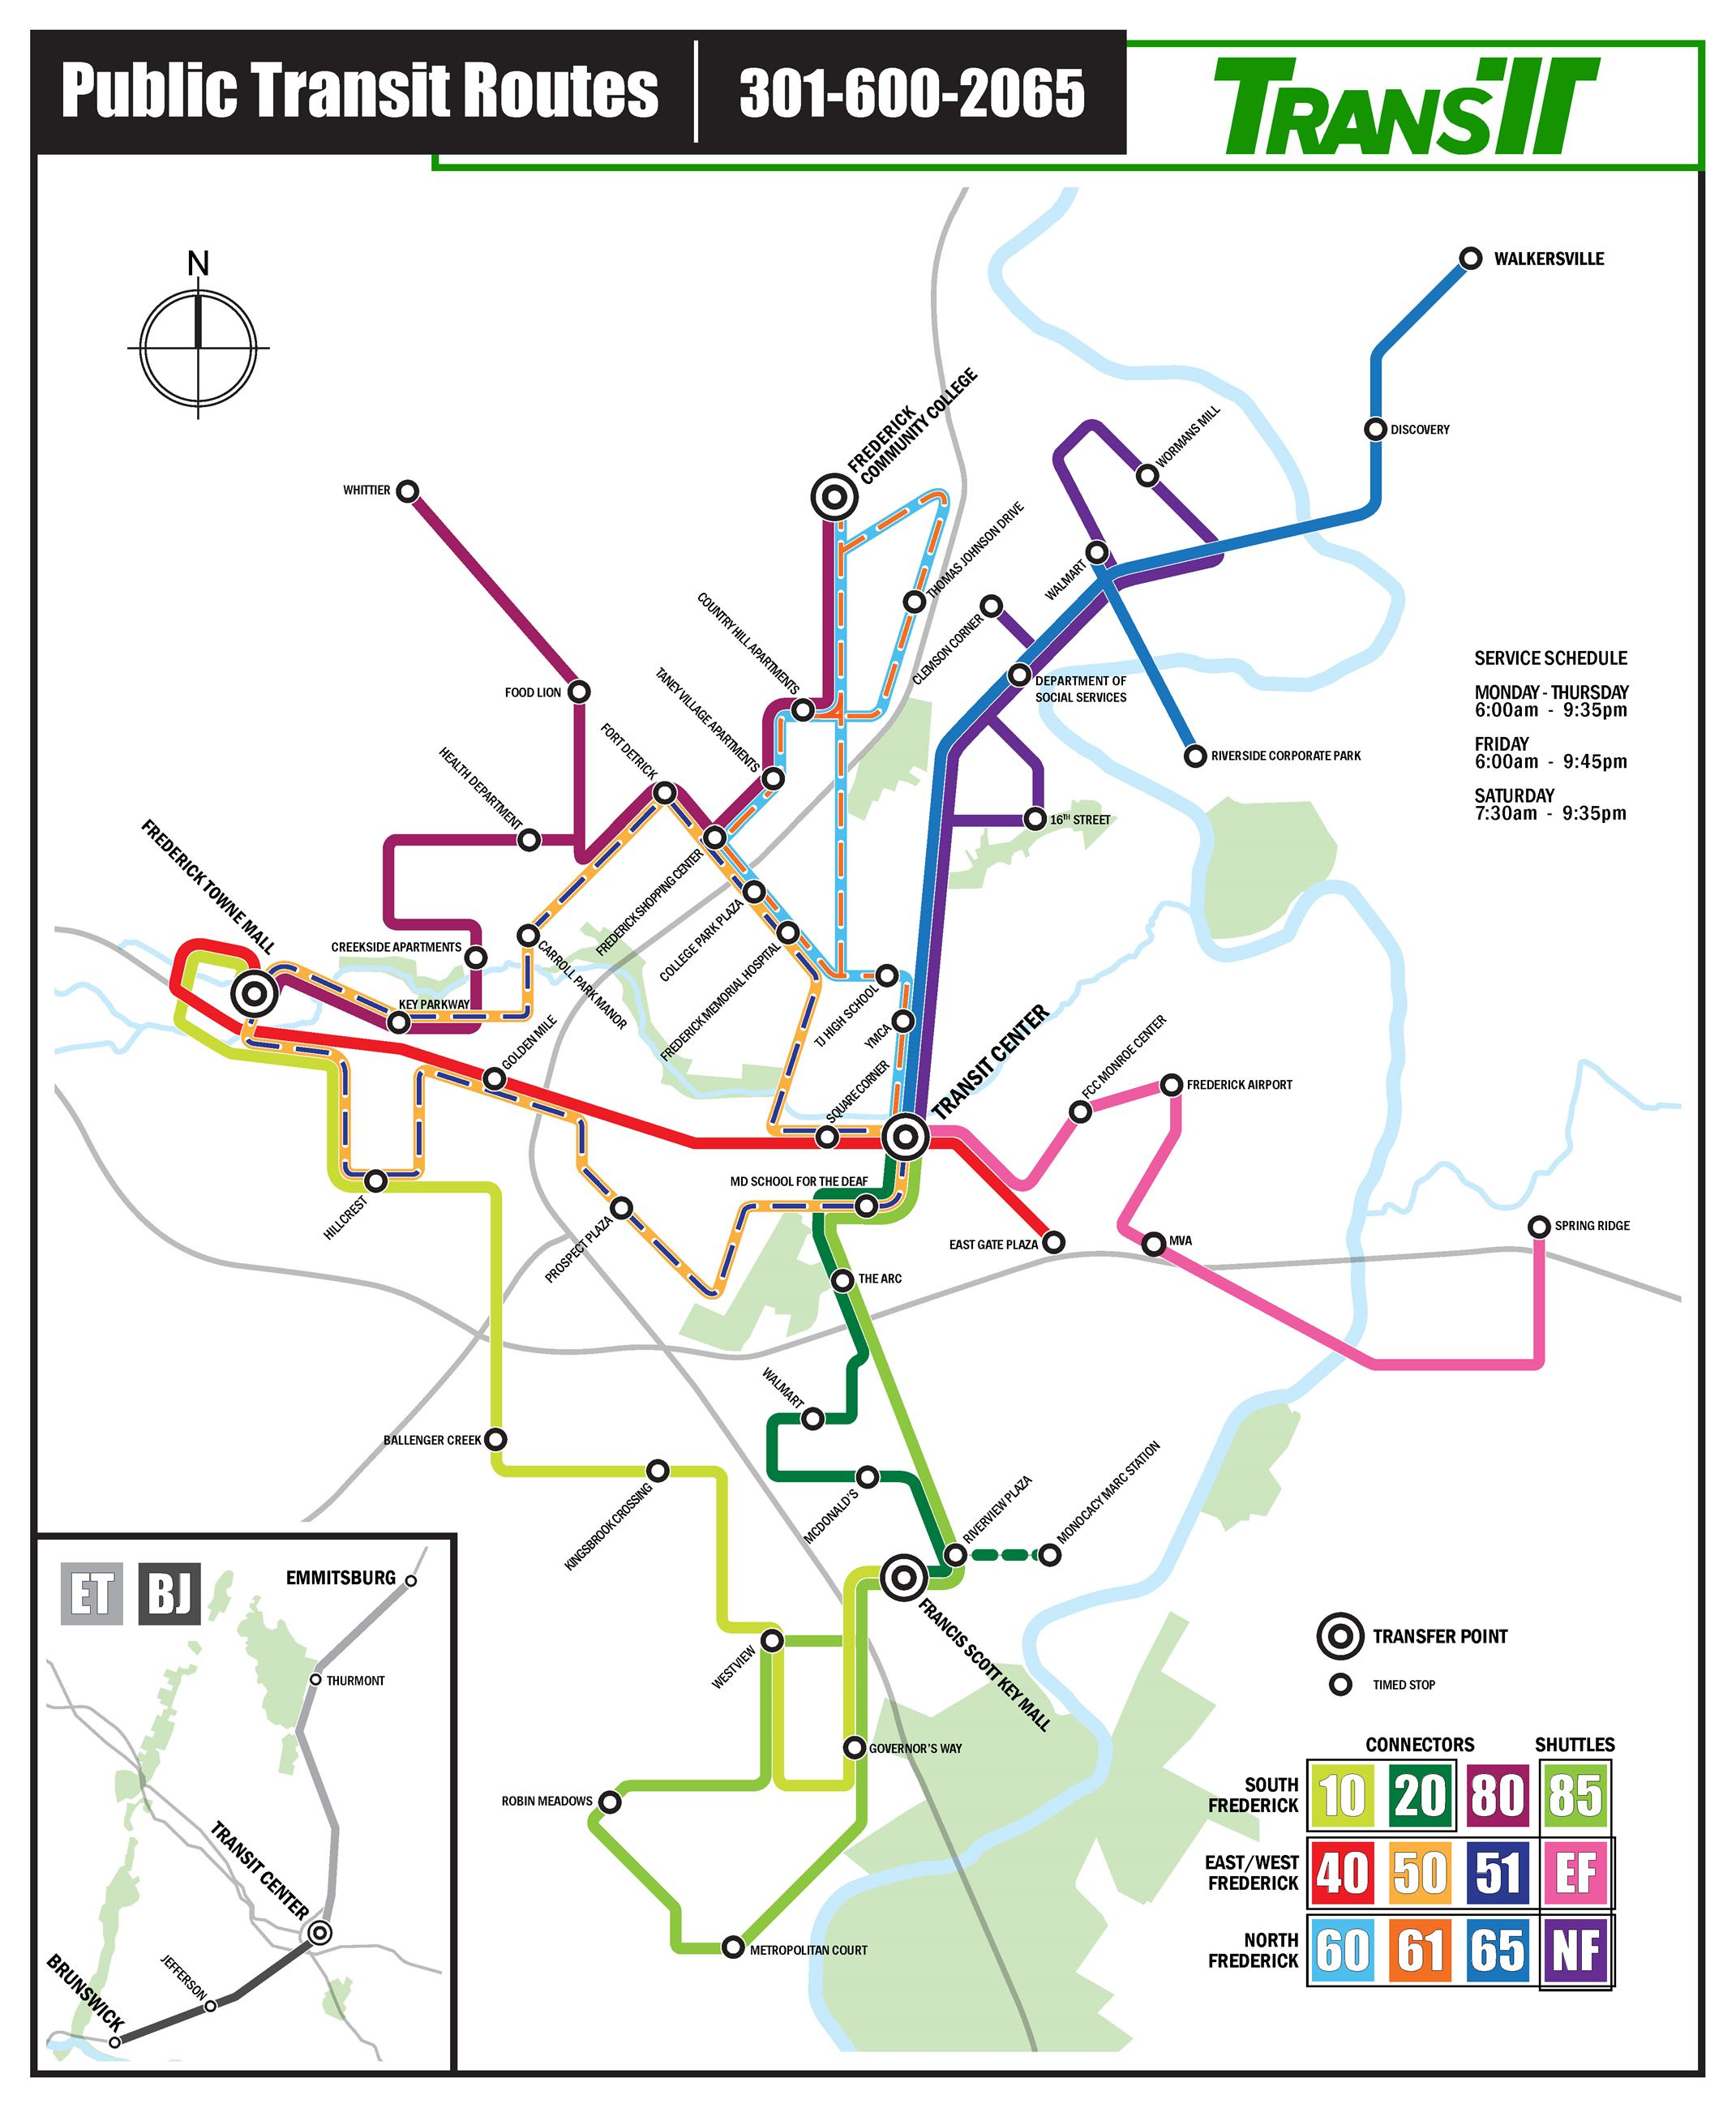 TransIT Routes & Schedule Information | Frederick County MD